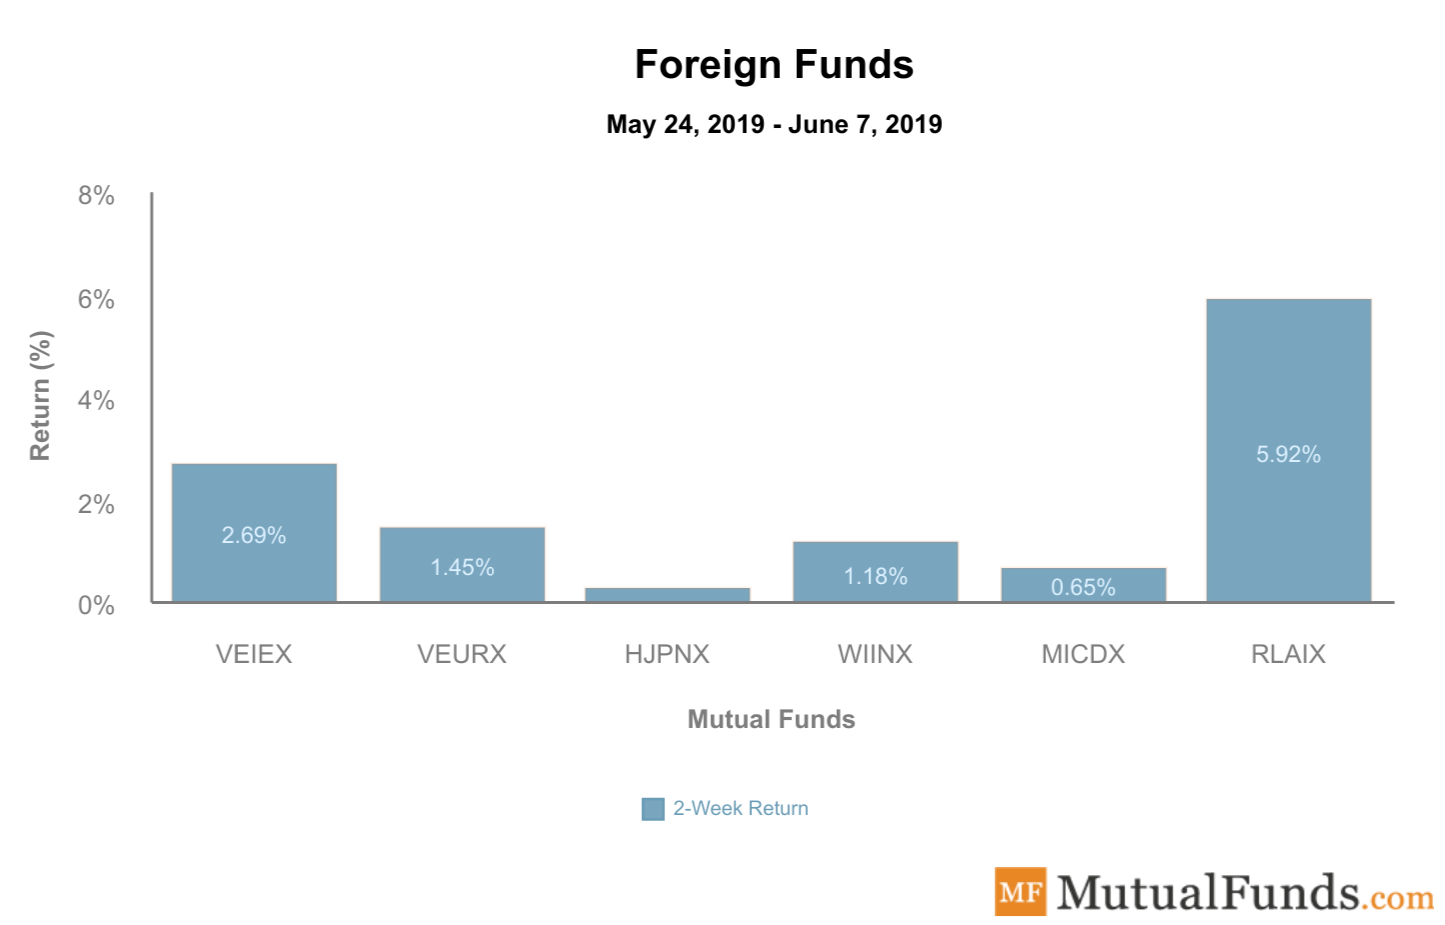 Foreign funds